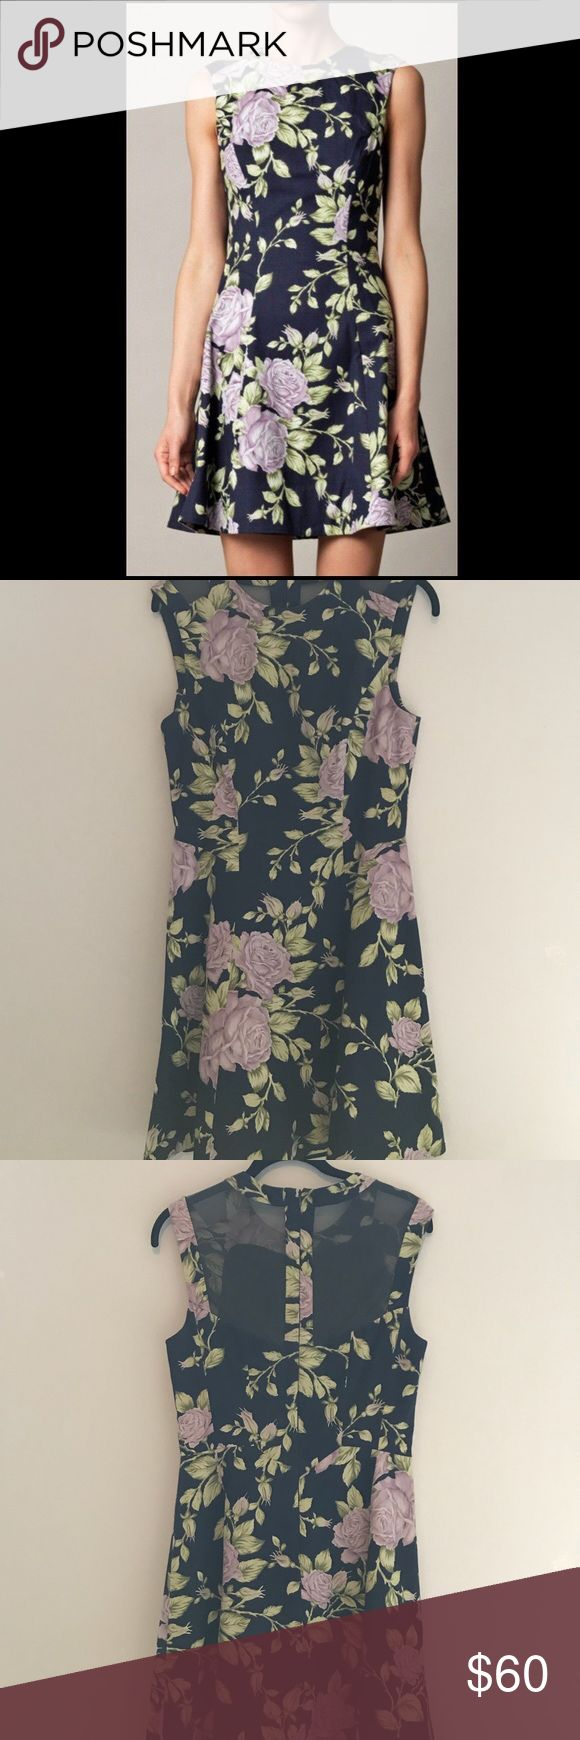 """rag & bone navy floral ruby dress Sheer panels add extra allure to the classic floral print and contemporary silhouette of the Rag & Bone Ruby dress.  Floral print.  Round neckline; sleeveless.  Princess seams.  Pleated, A-line skirt.  Back zip with sheer panels.  Approx. 33""""L from shoulder.  Cotton/Lycra®.  Made in USA.   No visible marks or damage. GREAT condition! rag & bone Dresses"""